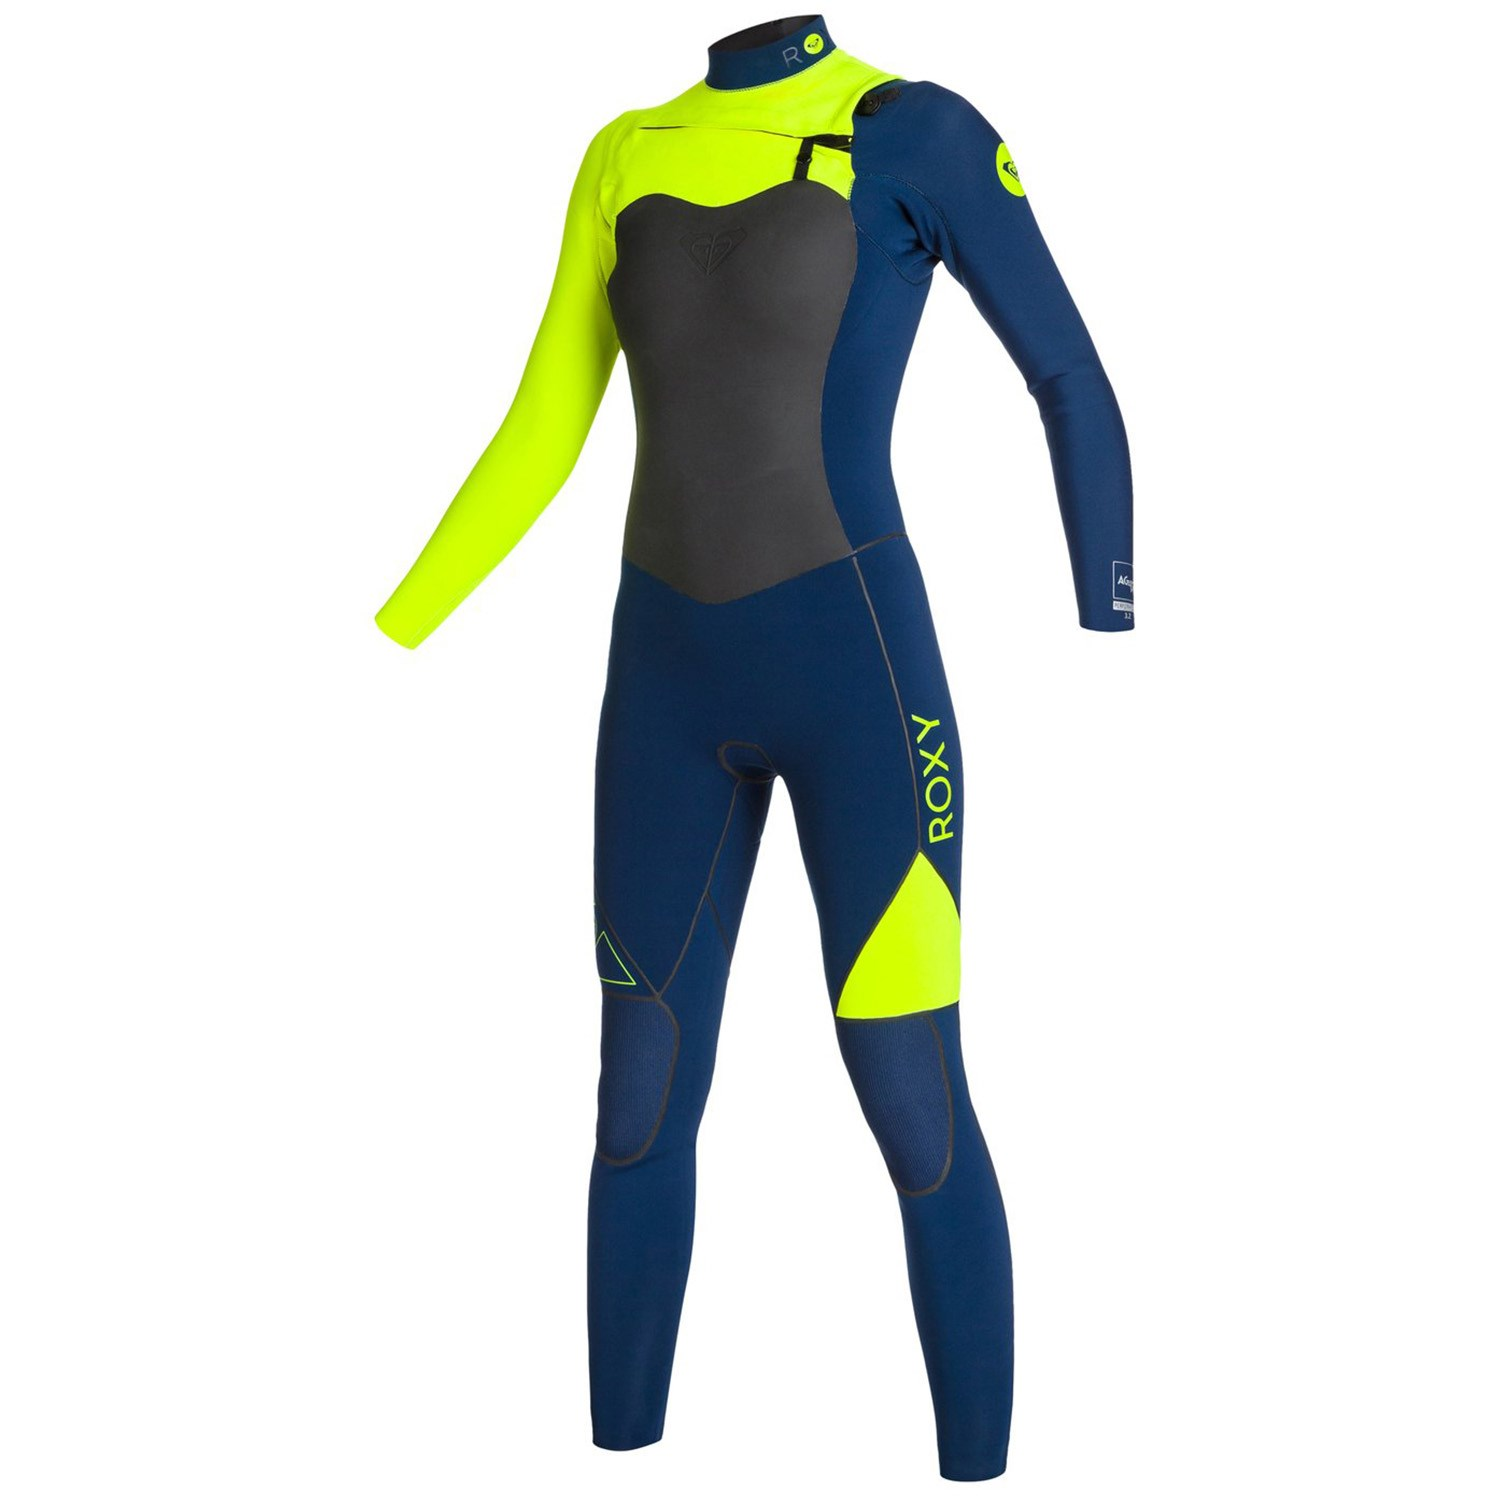 Roxy AG47 Performance 4 3 Chest Zip Wetsuit - Women s  0f5981c02